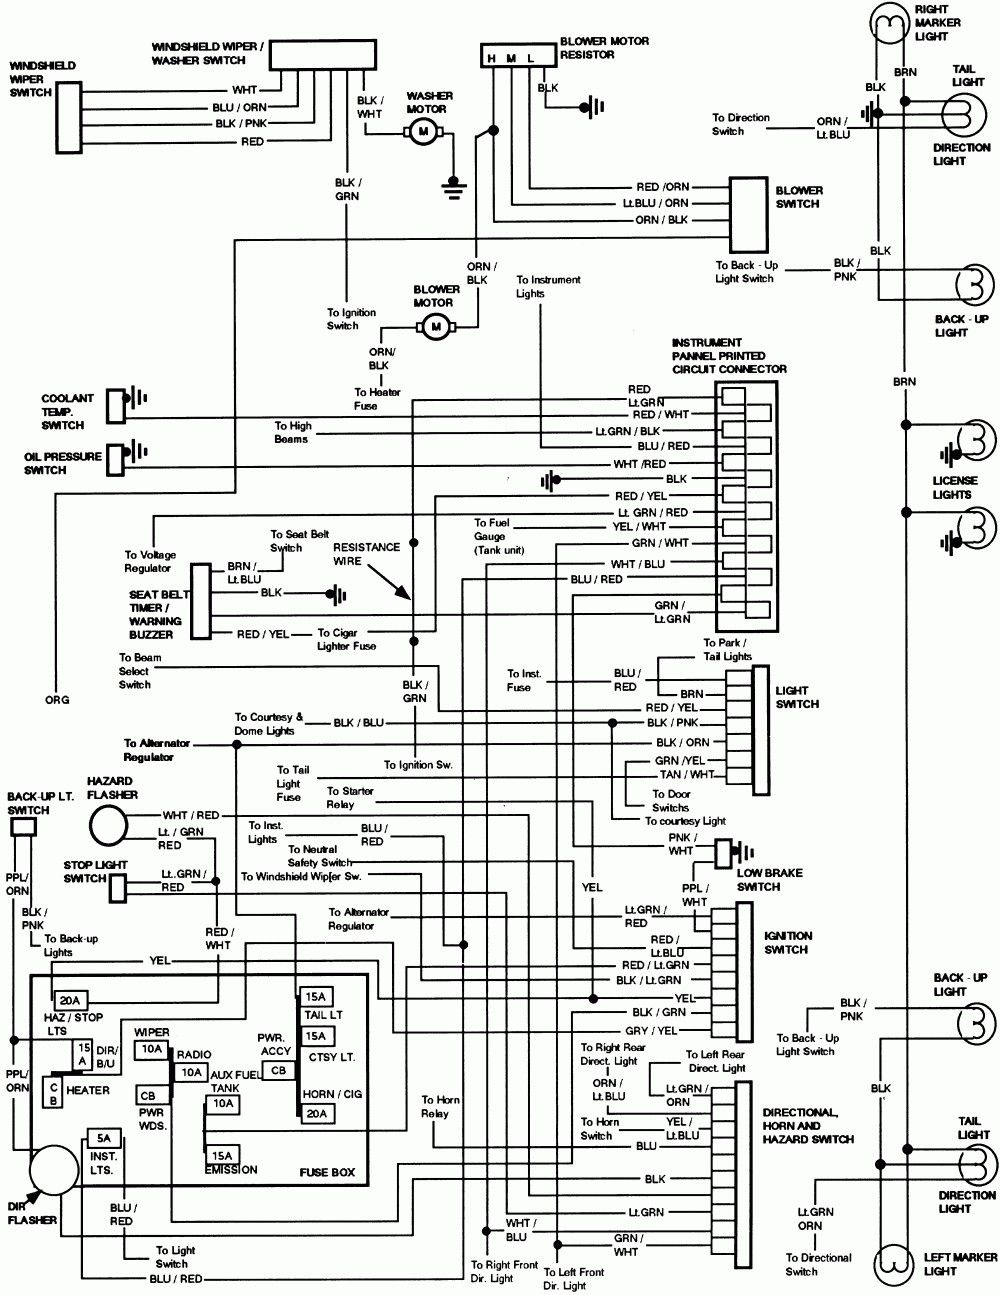 Nice Ford Starter Selenoid Wiring Diagram Ford Light Wiring Diagram Wiring Diagram Rh C6 Ansolsolder Co Bookingritzcarlton Info Diagram Design Ford F150 Trailer Wiring Diagram